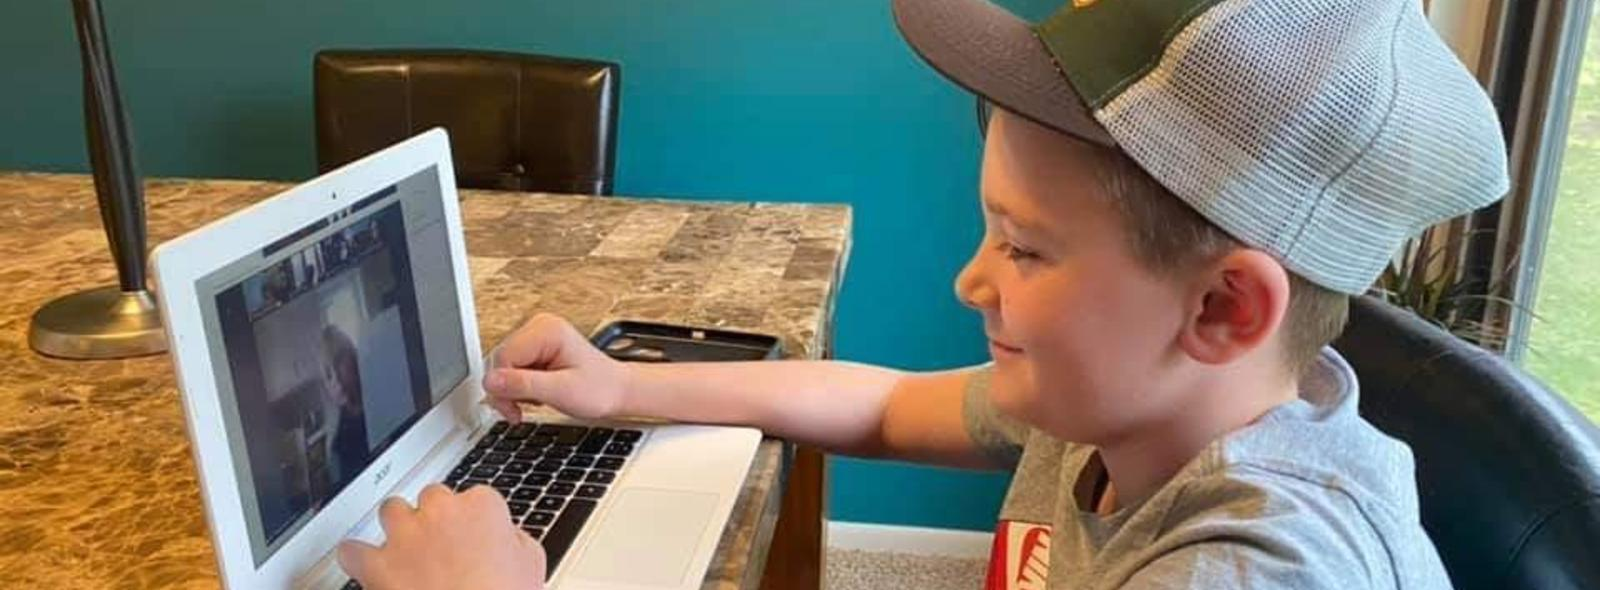 student smiles while learning online from home